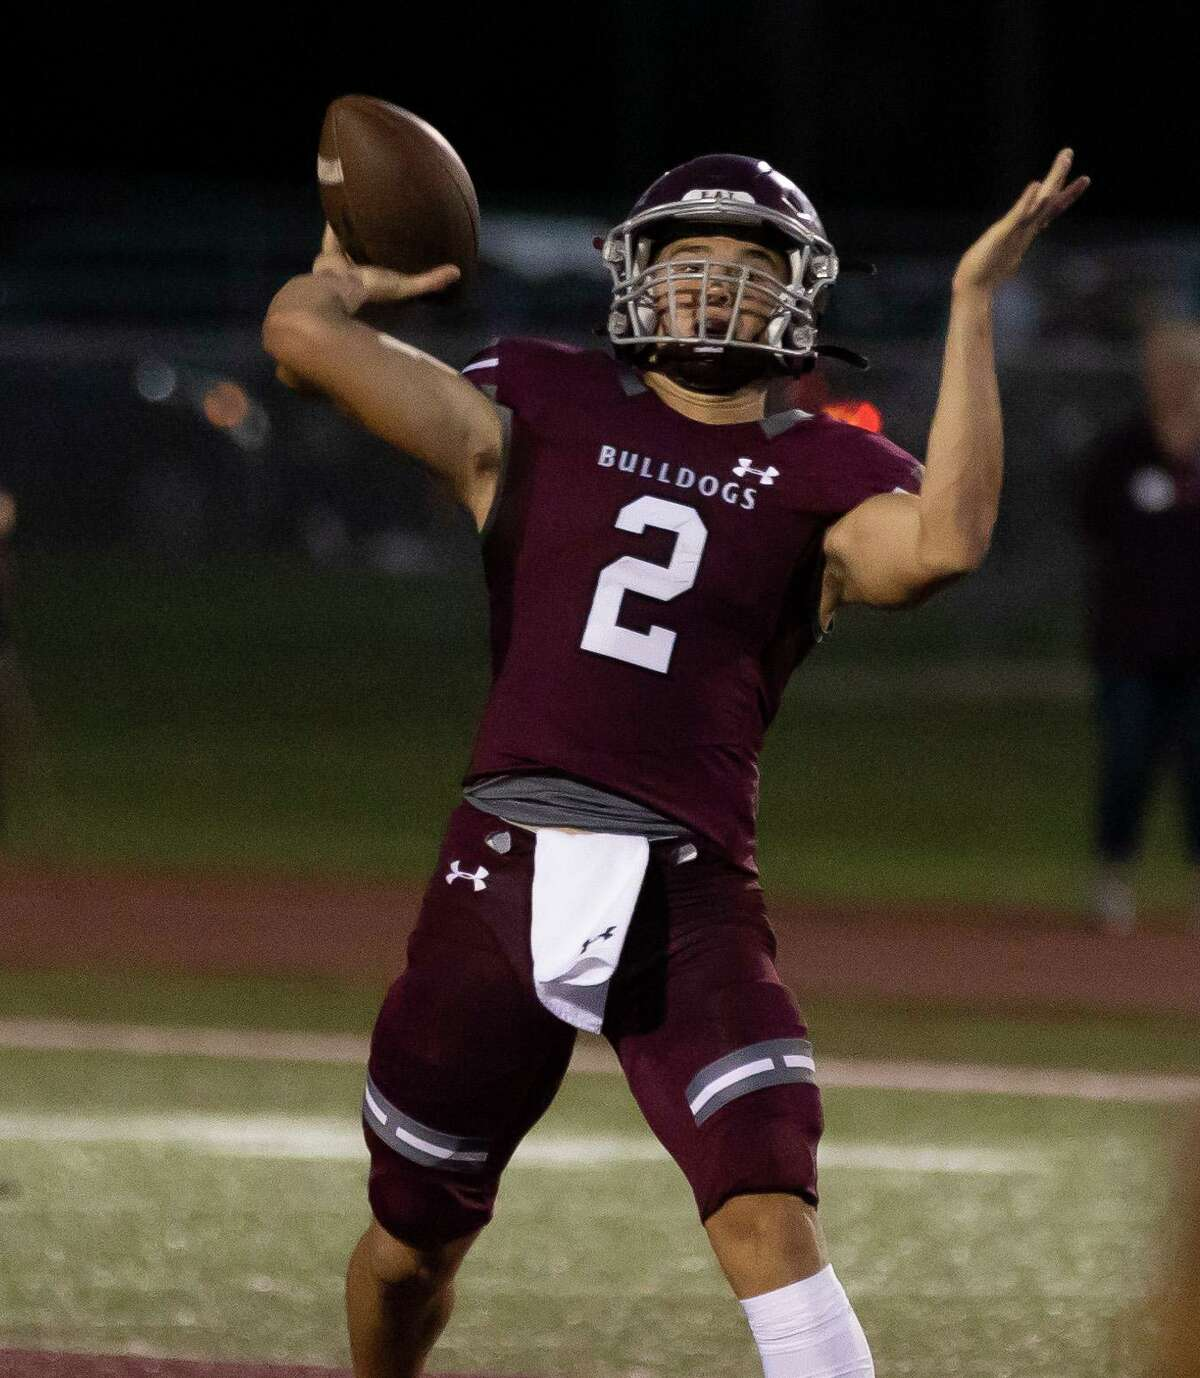 #2 of Magnolia throws during the first quarter of a District 8-5A (Div. I) football game against Caney Creek at Bulldog Stadium, Friday, Oct. 10, 2021, in Magnolia.